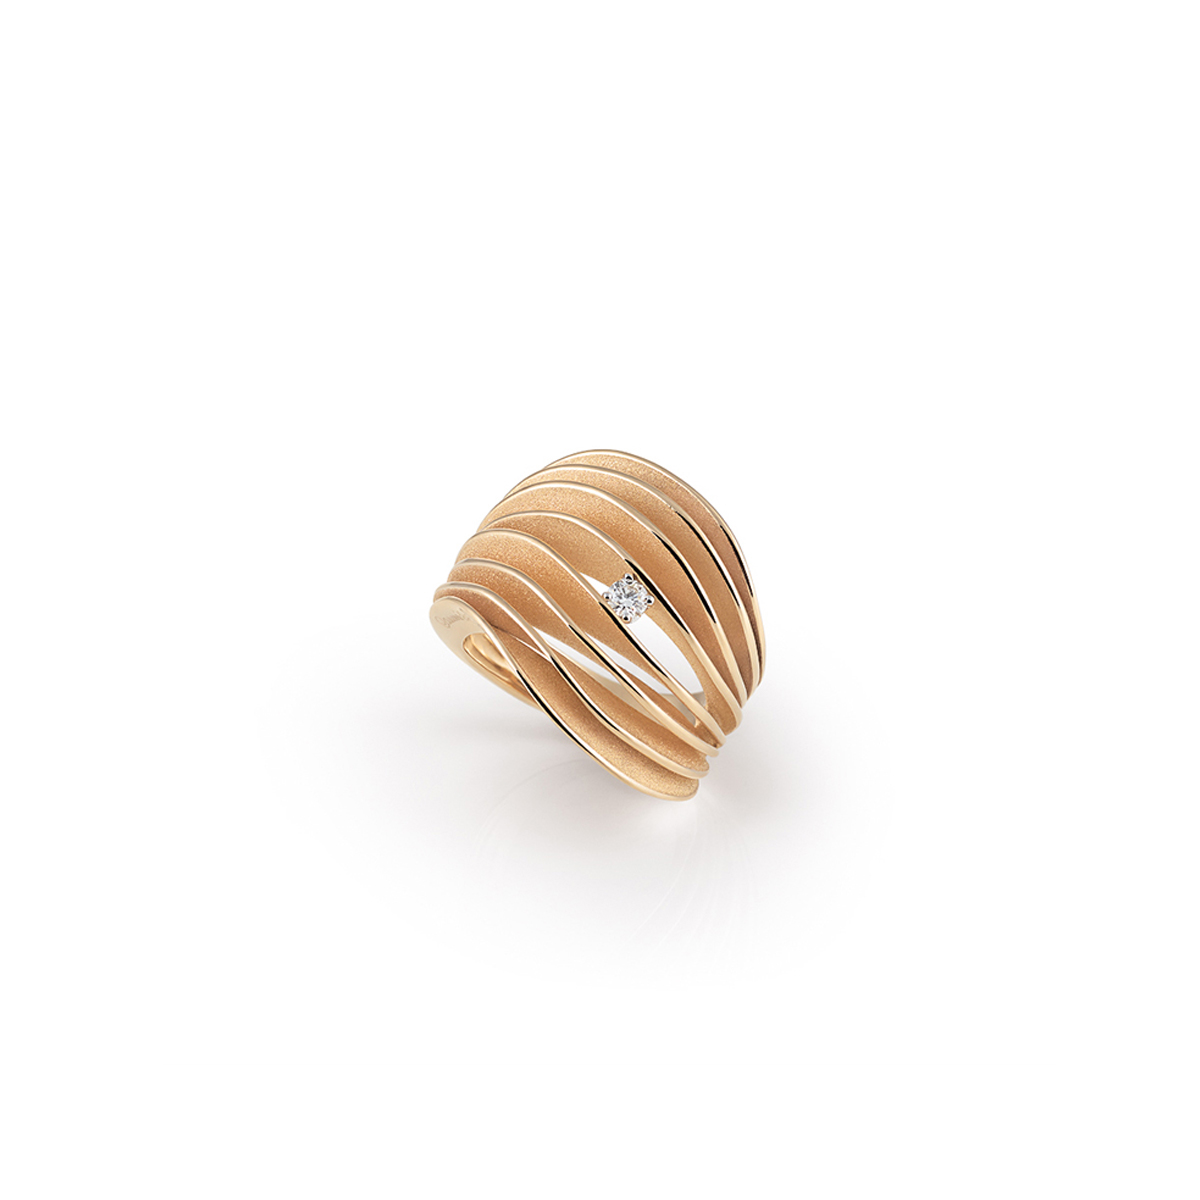 Annamaria Cammilli Dune Ring aus 18 Karat Orange Apricot Gold mit Brillant